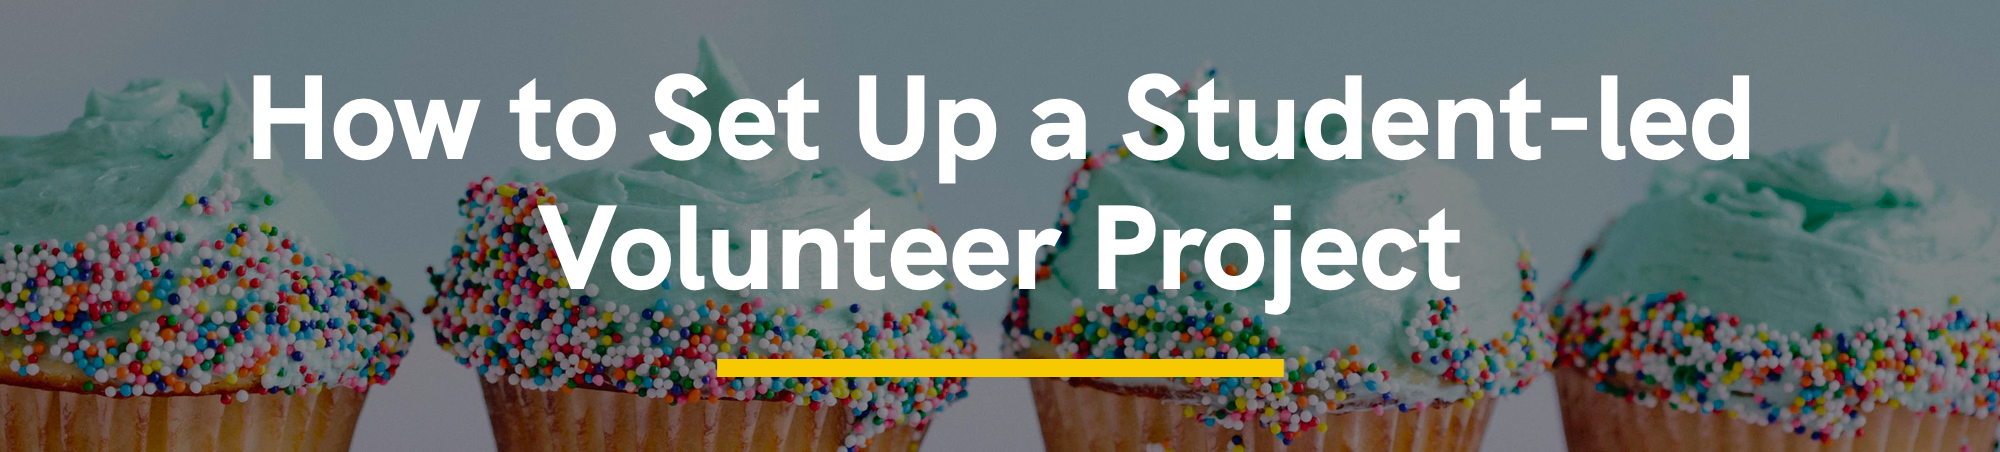 How to Set Up a Student-led Volunteer Project